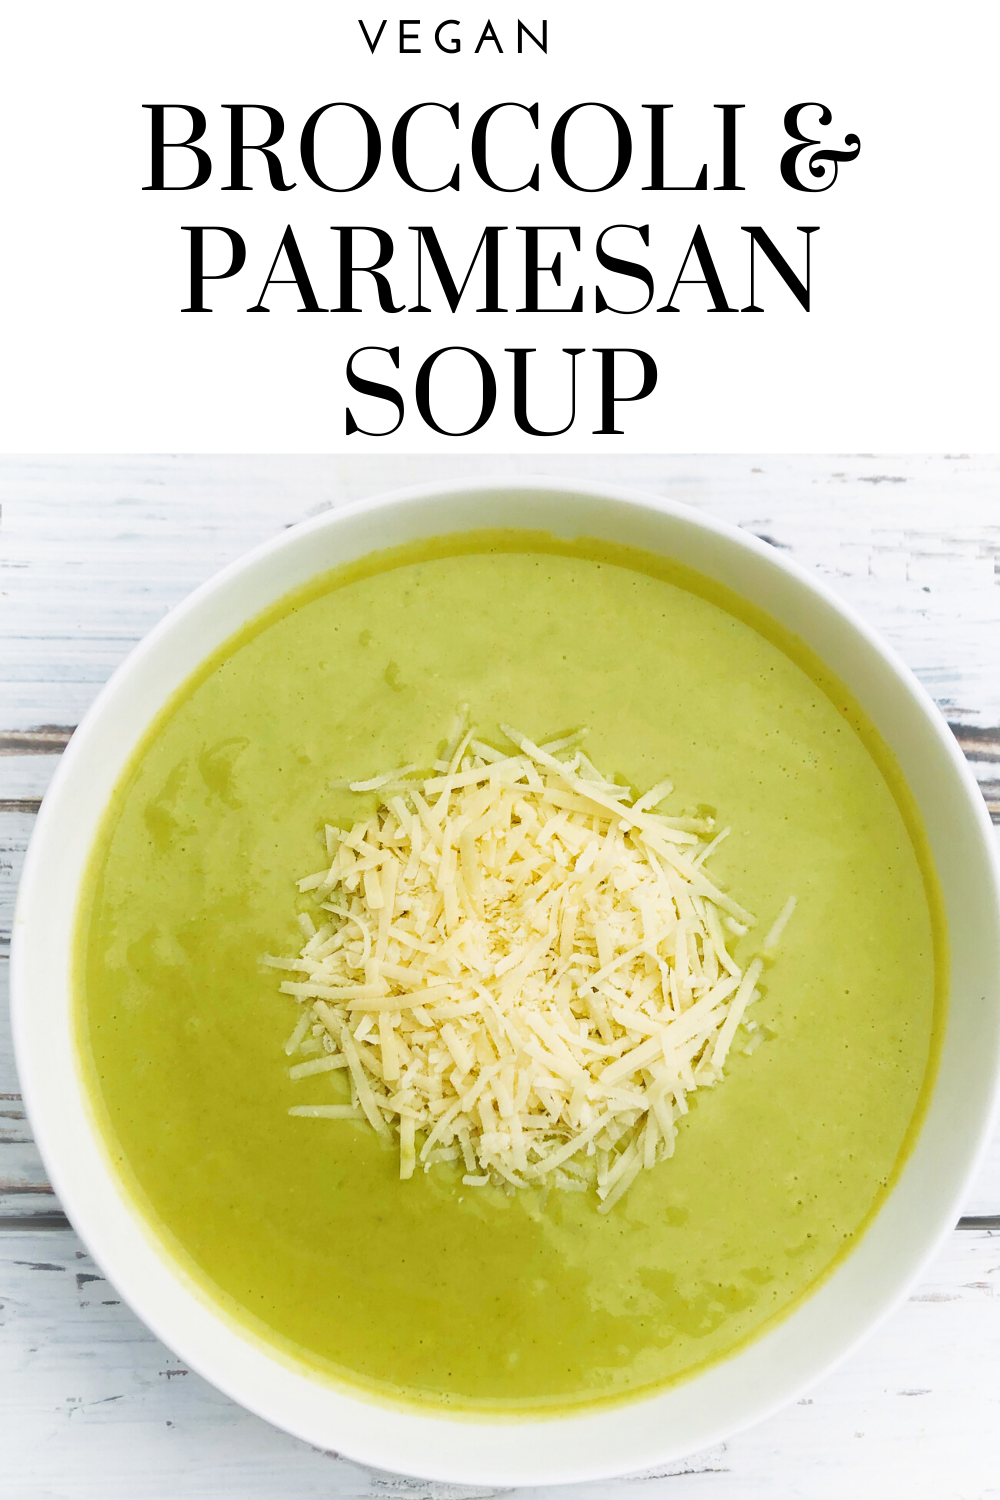 Vegan Broccoli and Parmesan Soup - Quick and easy - Creamy without feeling heavy - Packed with good-for-you ingredients - Ready to serve in 30 minutes or less! via @thiswifecooks